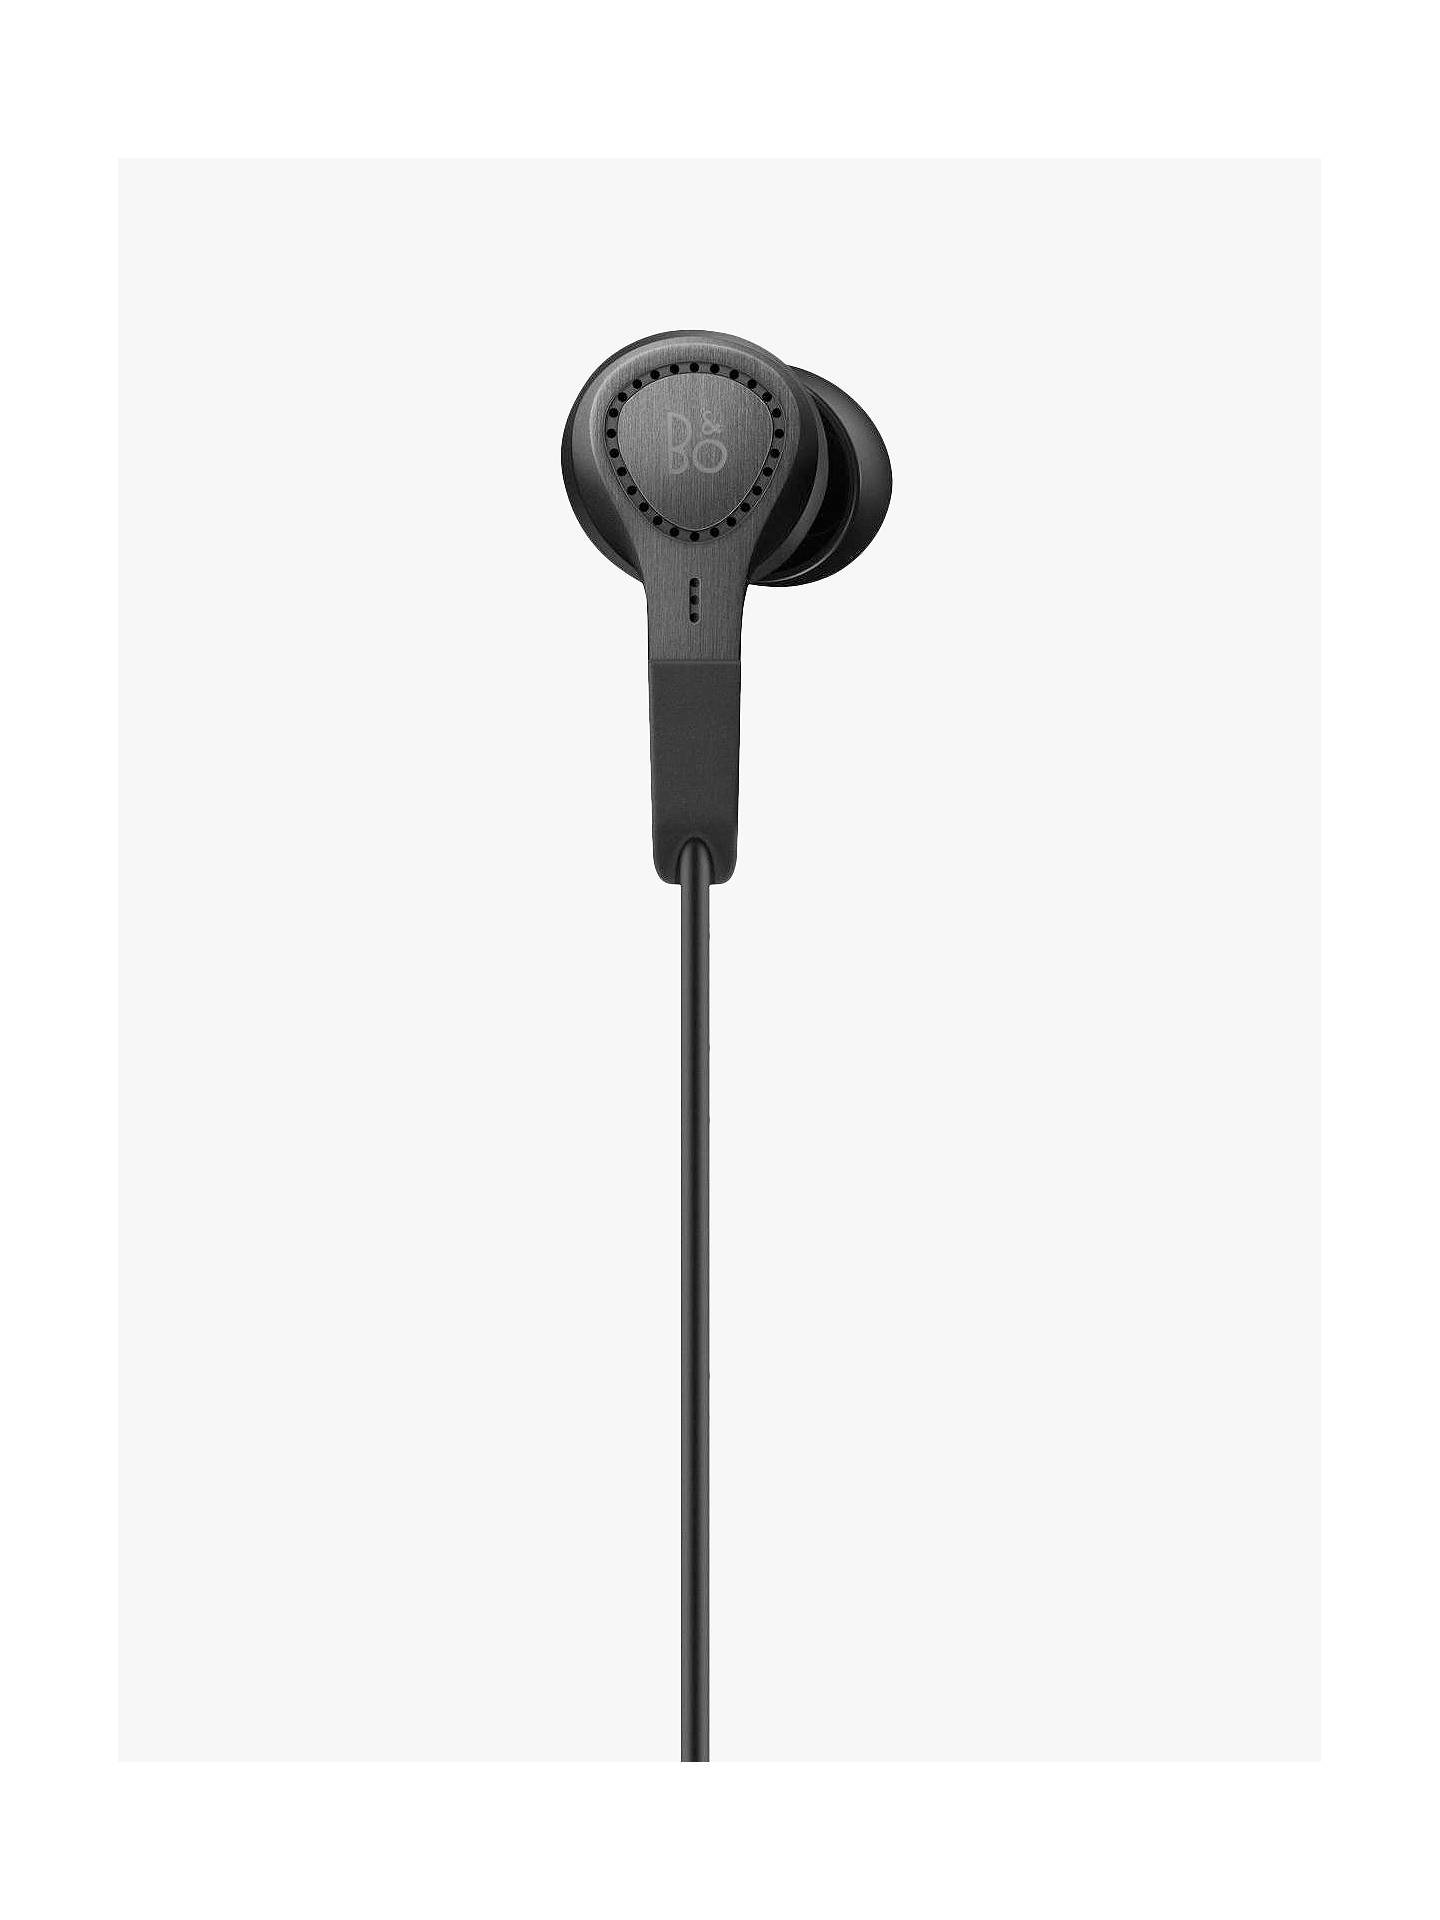 Buy Bang & Olufsen Beoplay E4 Active Noise Cancelling In-Ear Headphones with Inline Mic/Remote for iOS Devices, Black Online at johnlewis.com